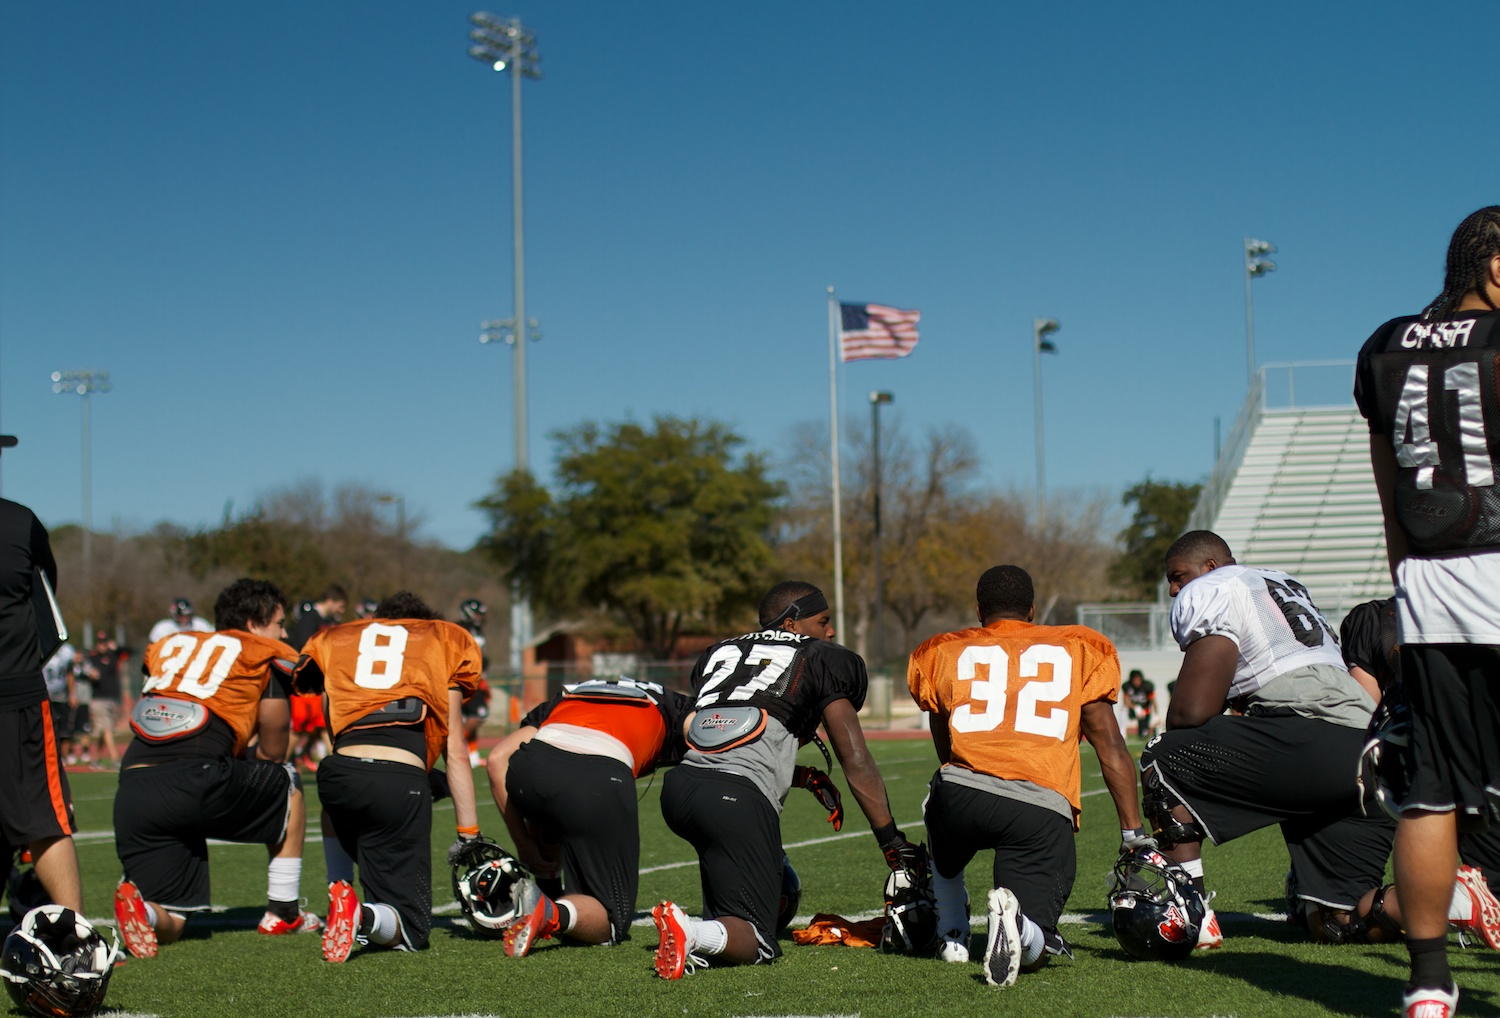 Players take a break on the sidelines during a practice leading up to the Alamo Bowl in San Antonio, Texas.